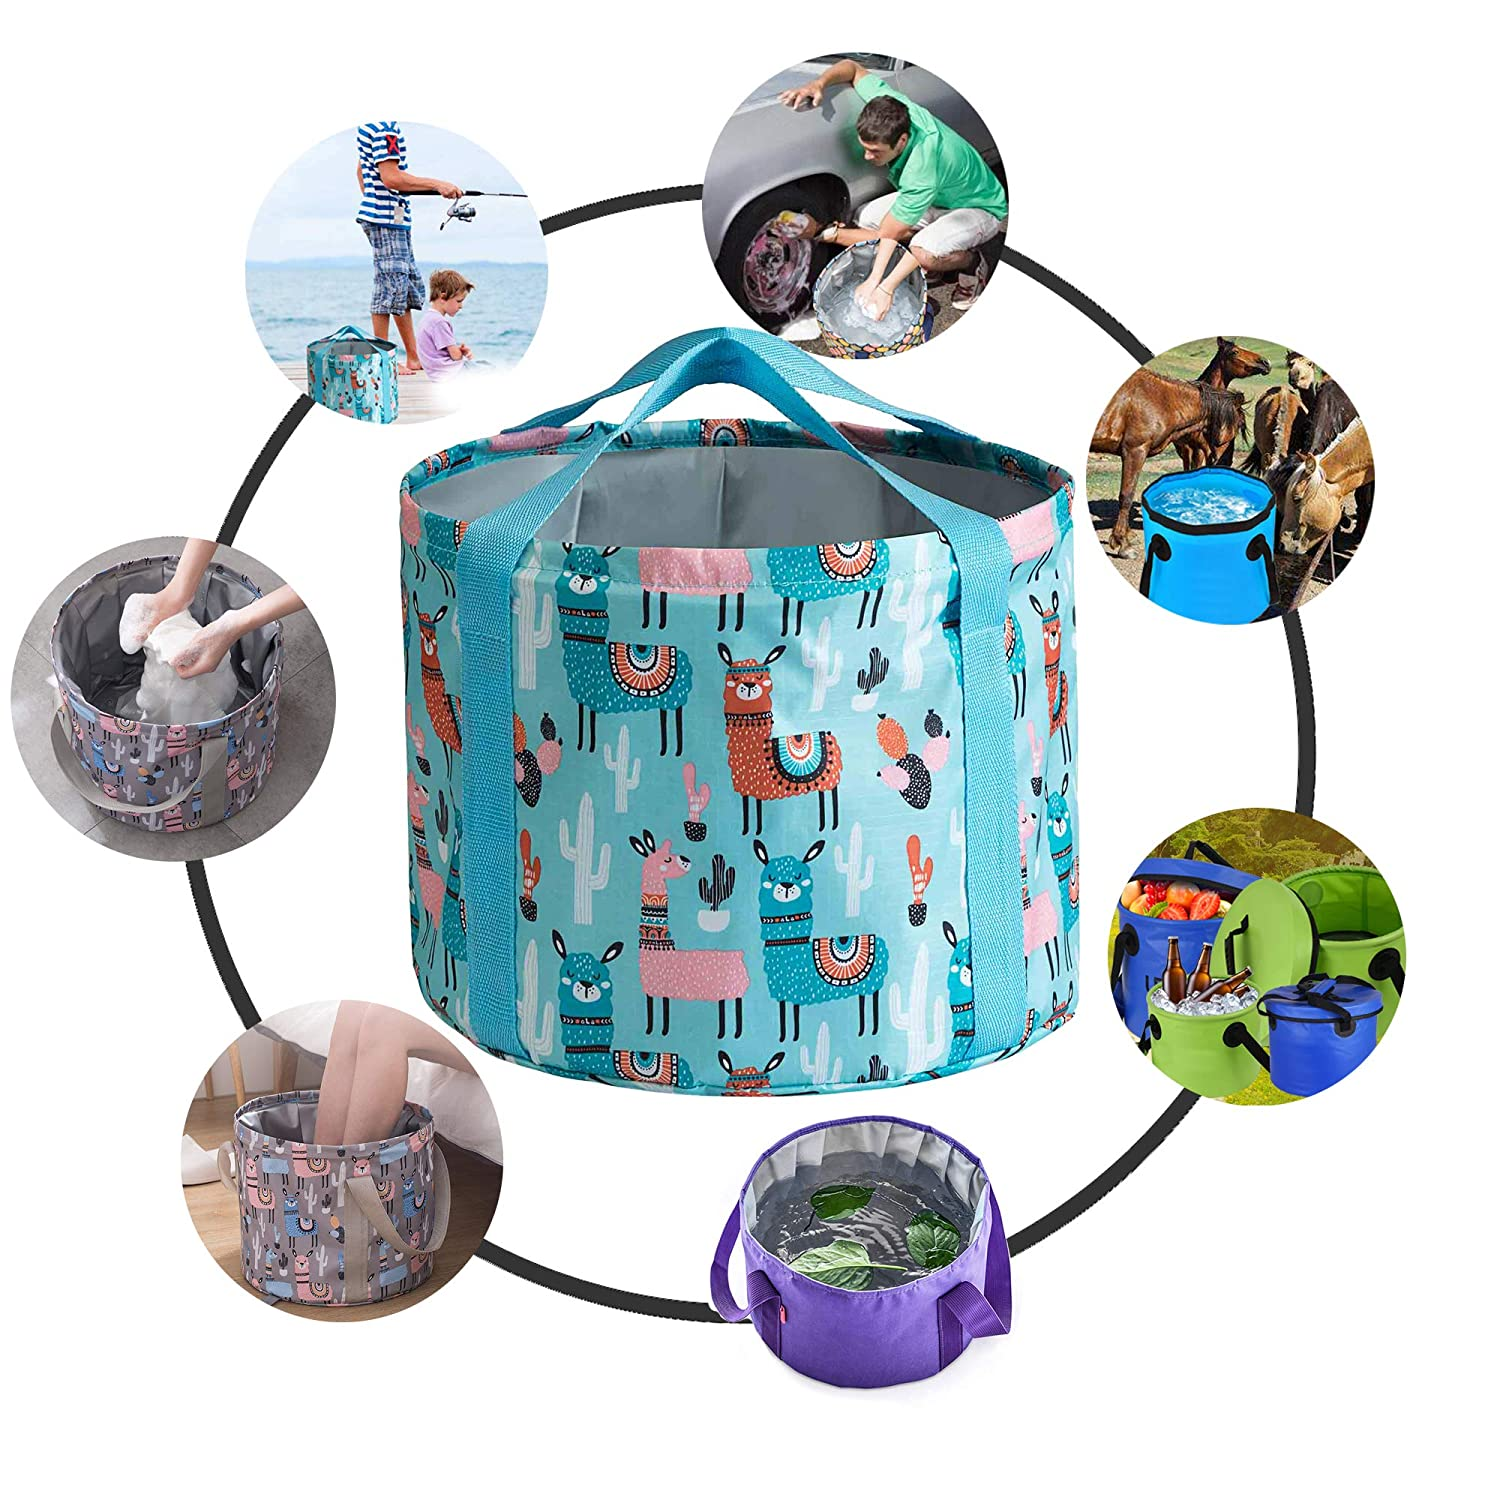 Wendy1860 Collapsible Bucket,Portable Folding Bucket Water Container Fishing Bucket 21//26L Large Size with Carrying Bag for Indoor Outdoor Cooking Picnic Camping Hiking Traveling